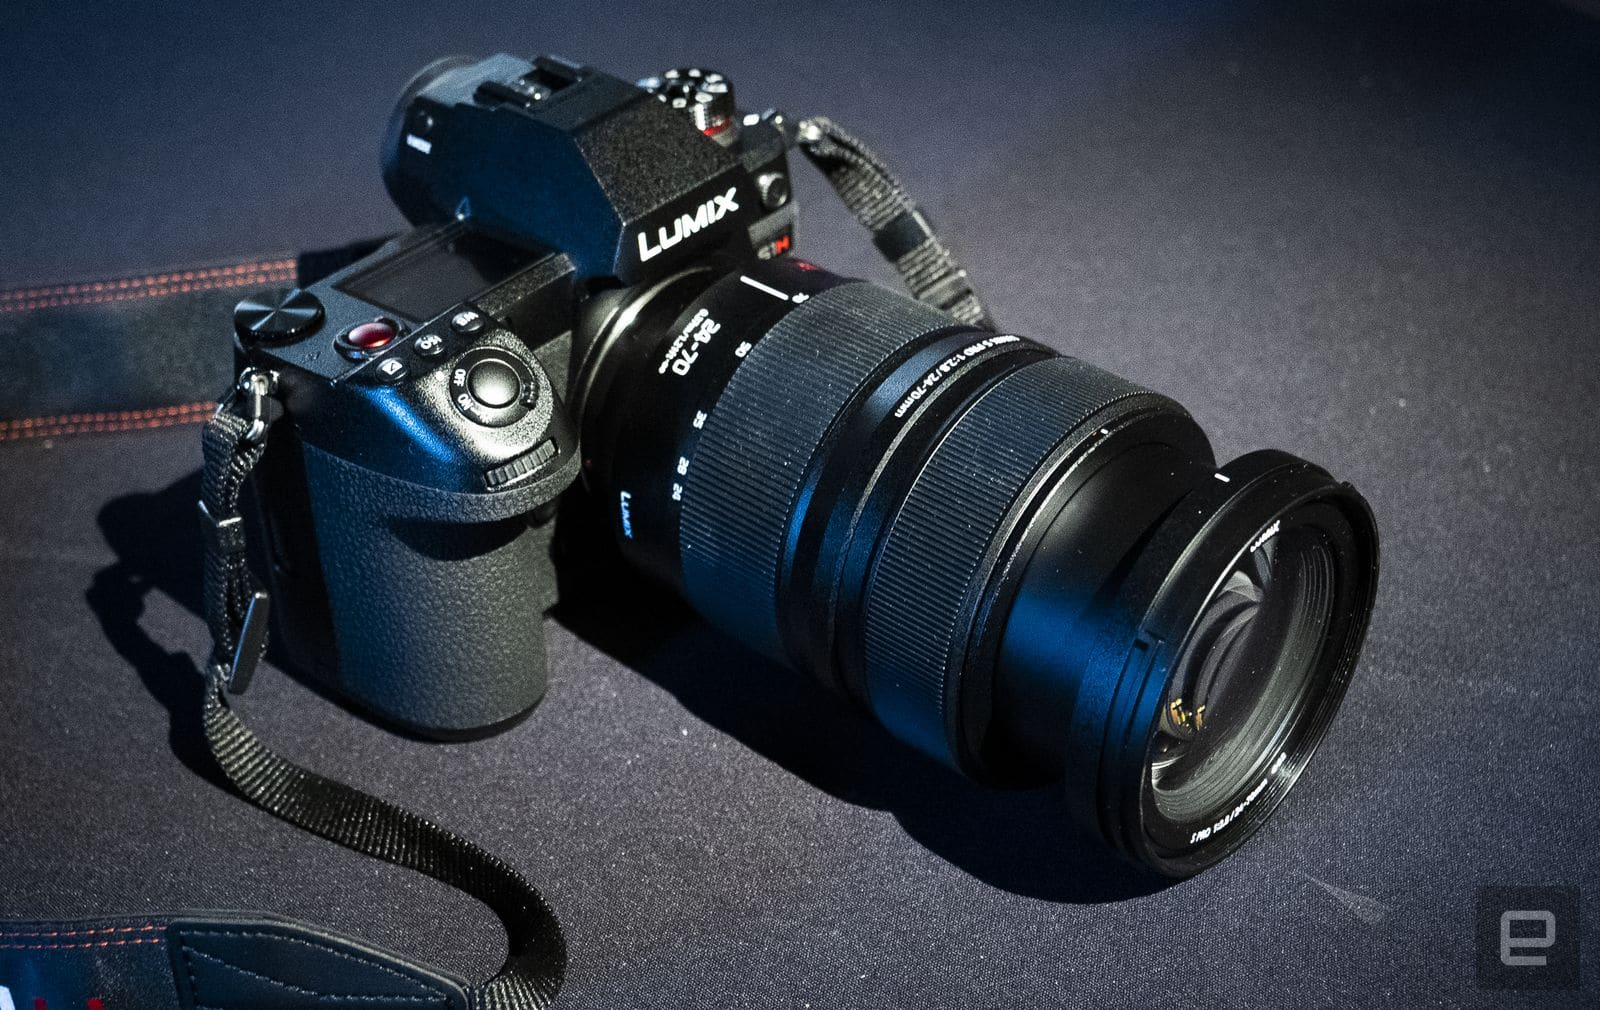 Panasonic S1H full-frame video-centric mirrorless camera